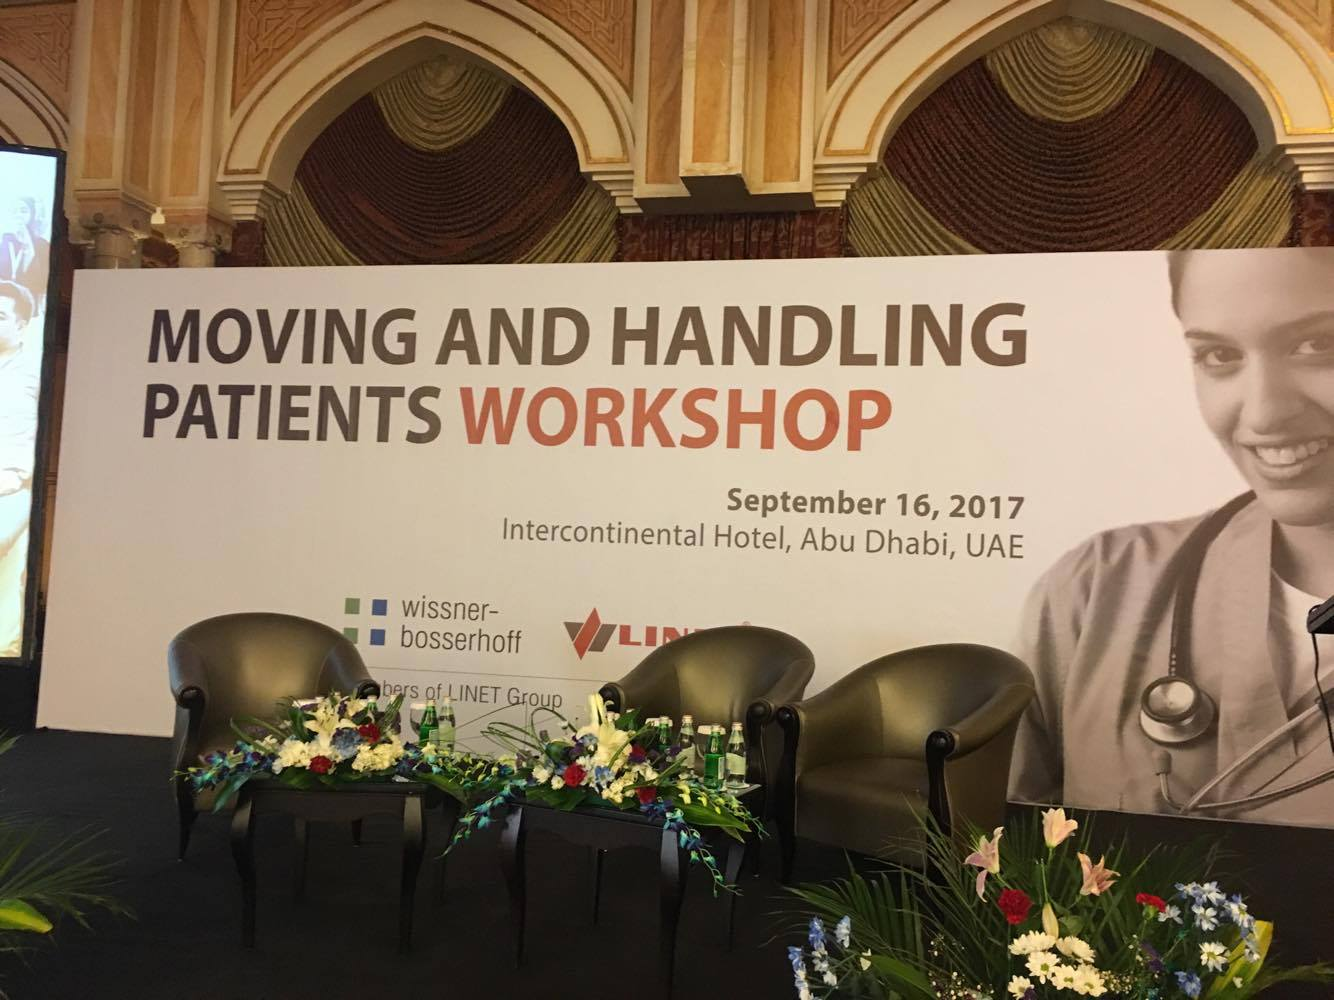 Moving and handling workshop at Abu Dhabi